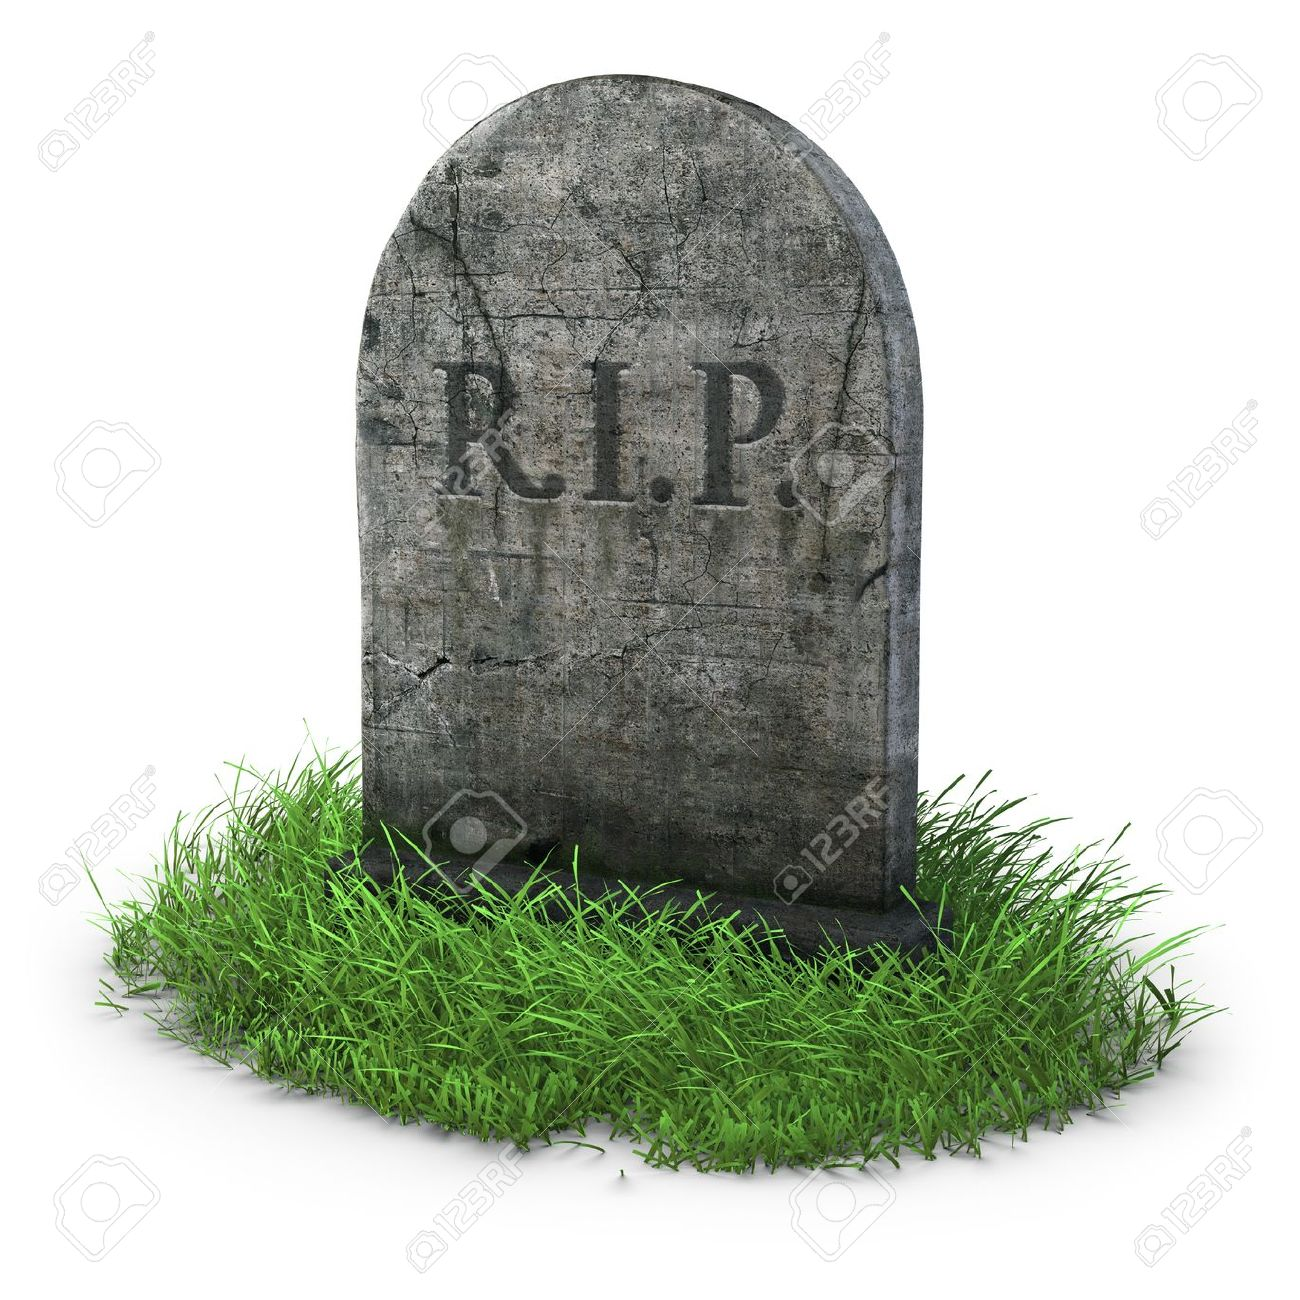 https://i1.wp.com/previews.123rf.com/images/timurd/timurd1008/timurd100800025/7624859-gravestone-with-grass-on-white-background--Stock-Photo-tombstone-gravestone-grave.jpg